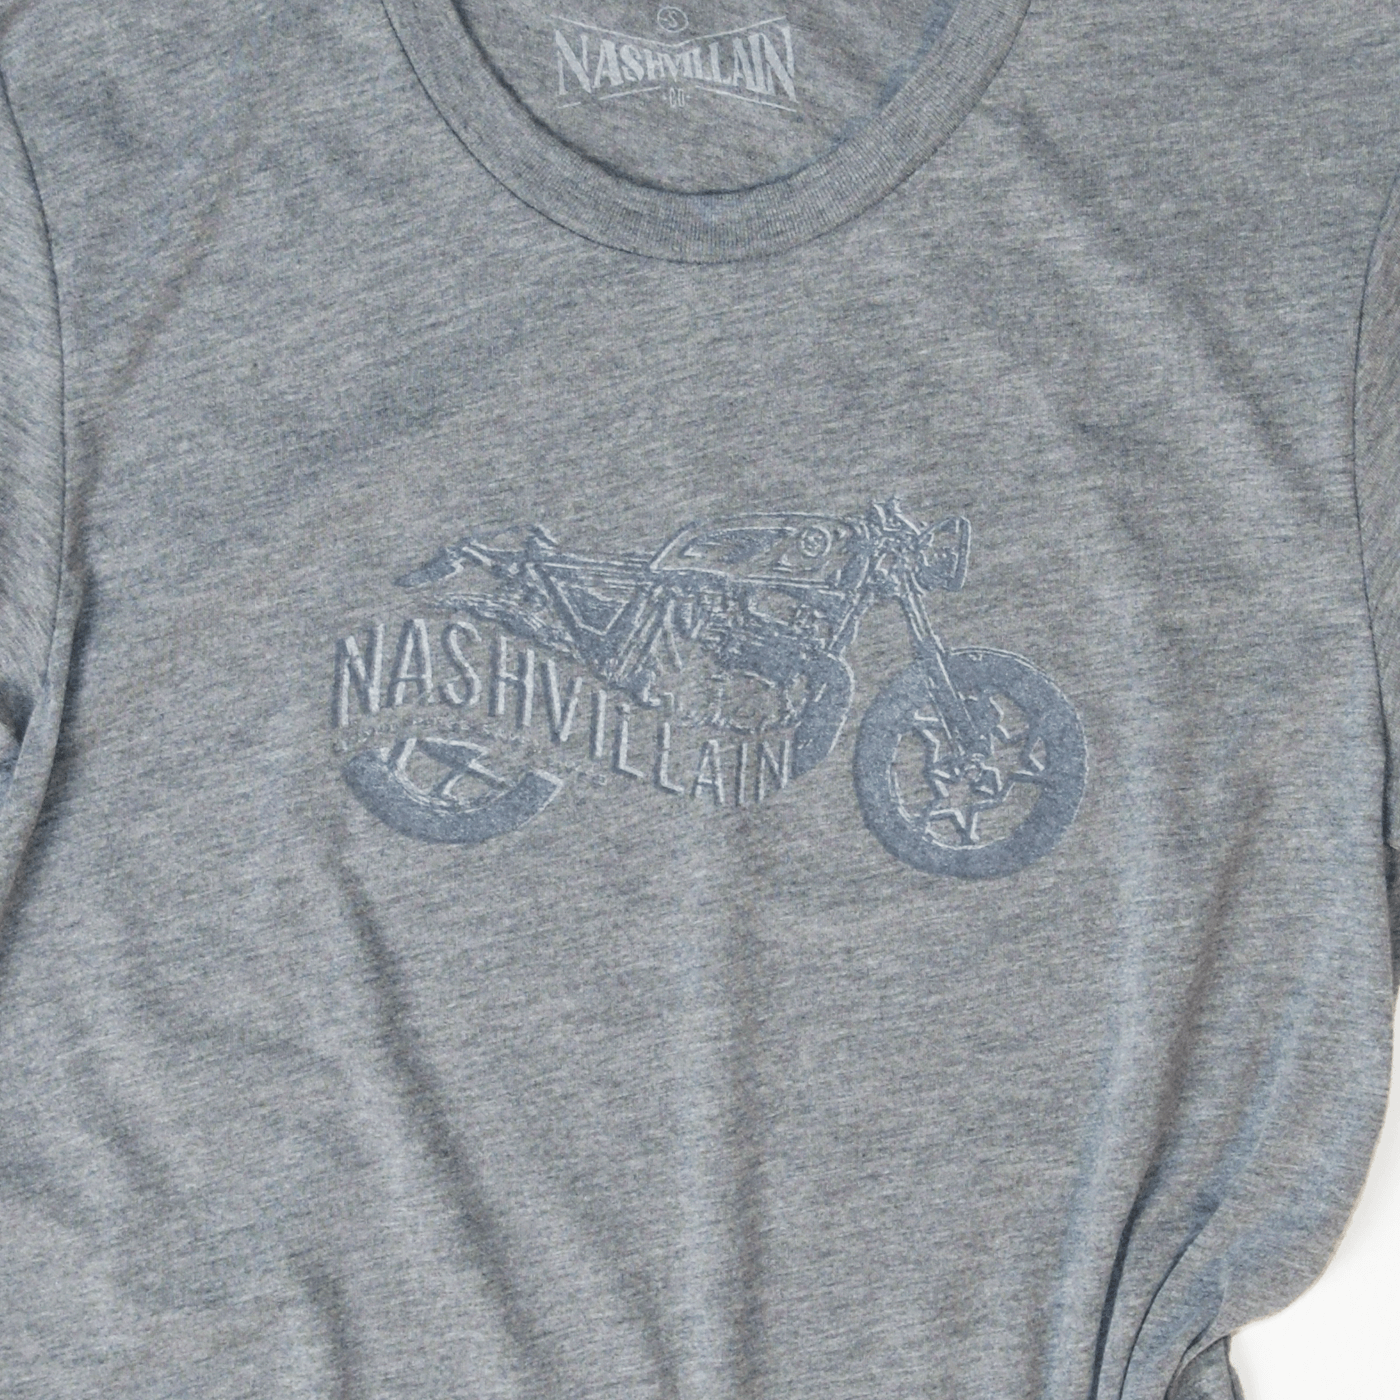 Motorcycle Nashvillain Loud Pipes Save Lives grey tee